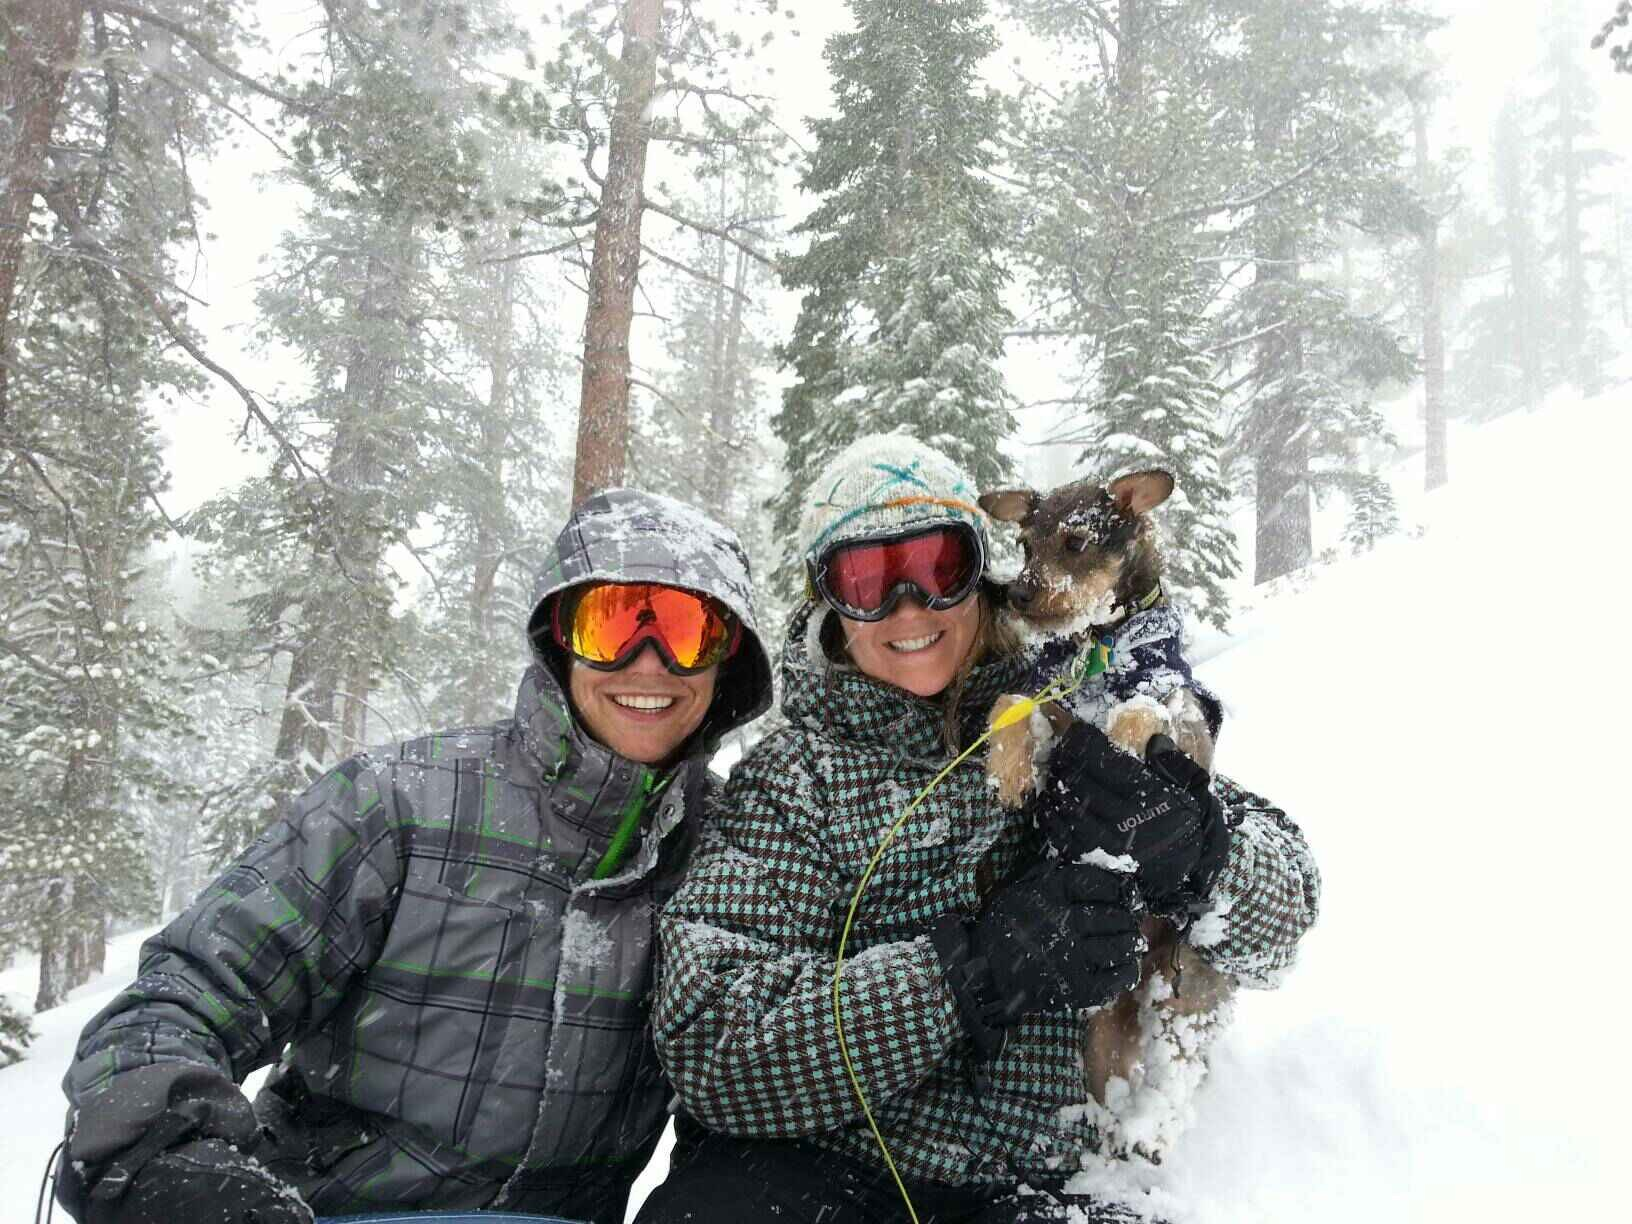 Mrs. Summers, Mr. Summers and Walter in the snow